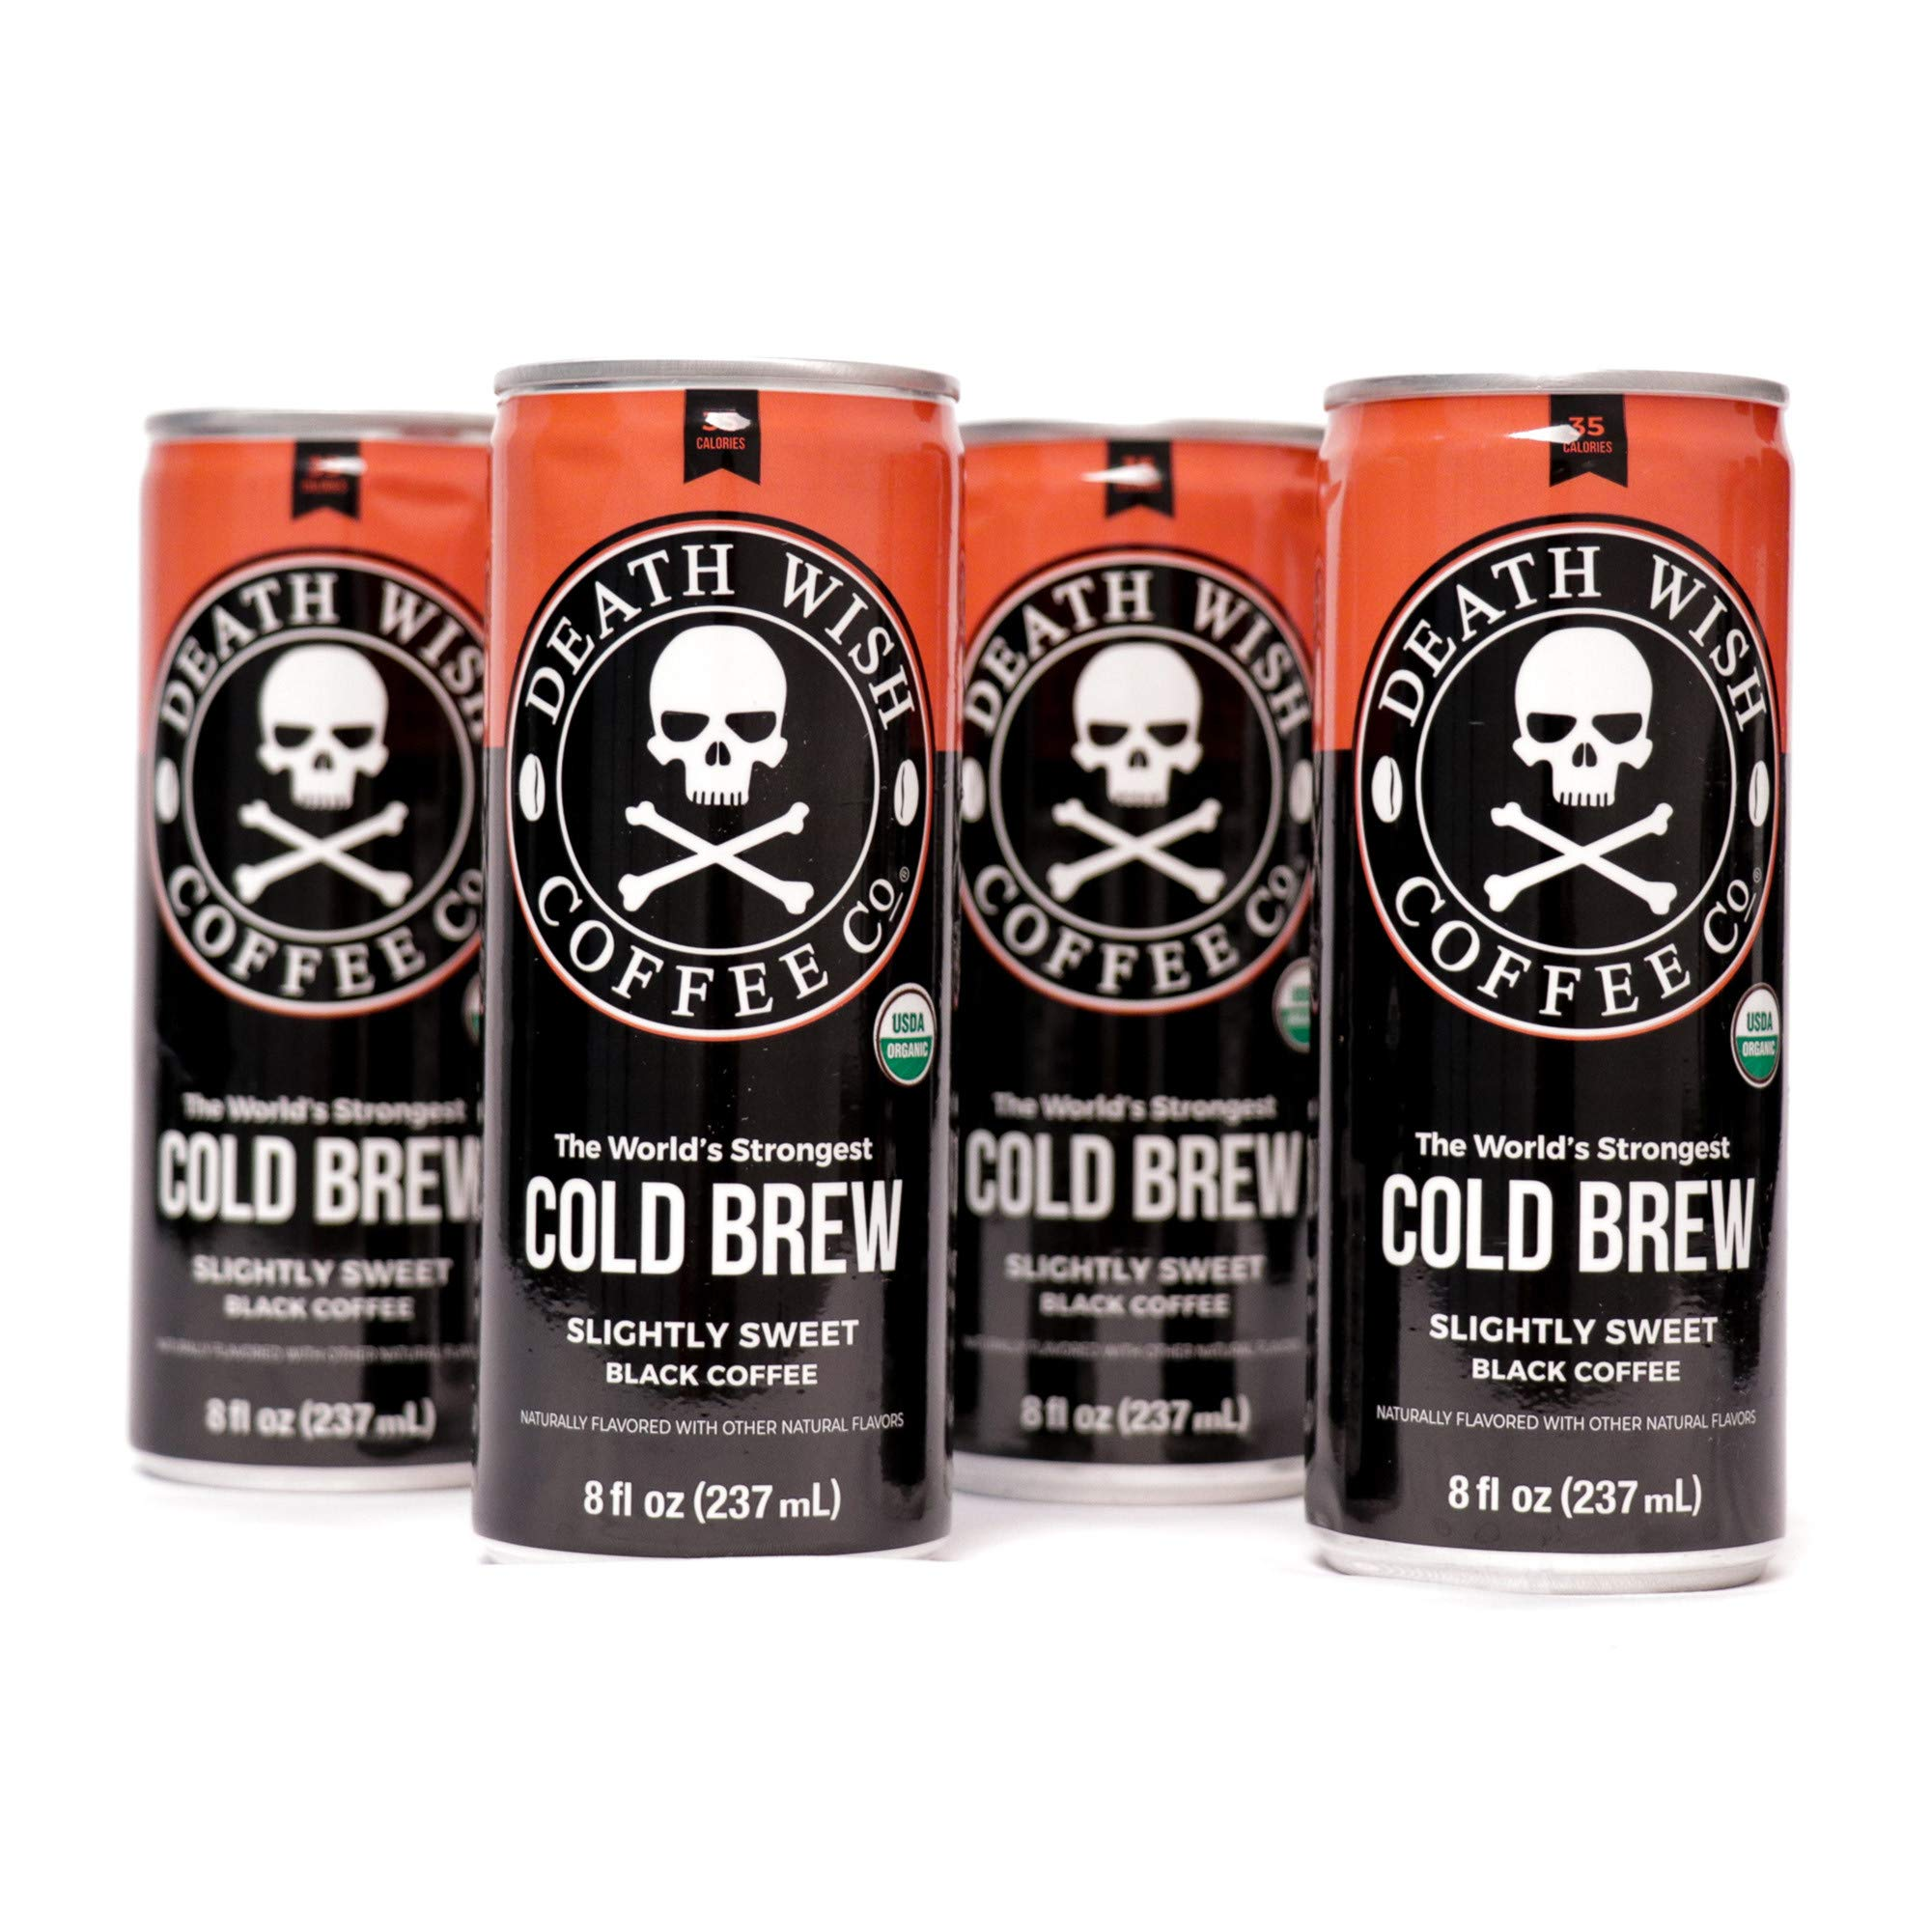 Death Wish Coffee, Cold Brew Cans, The World's Strongest Coffee, Organic Iced Coffee Drink - 8 Ounces - 300 mg of caffeine - 4 Pack (Slightly Sweetened Black) by Death Wish Coffee Co.